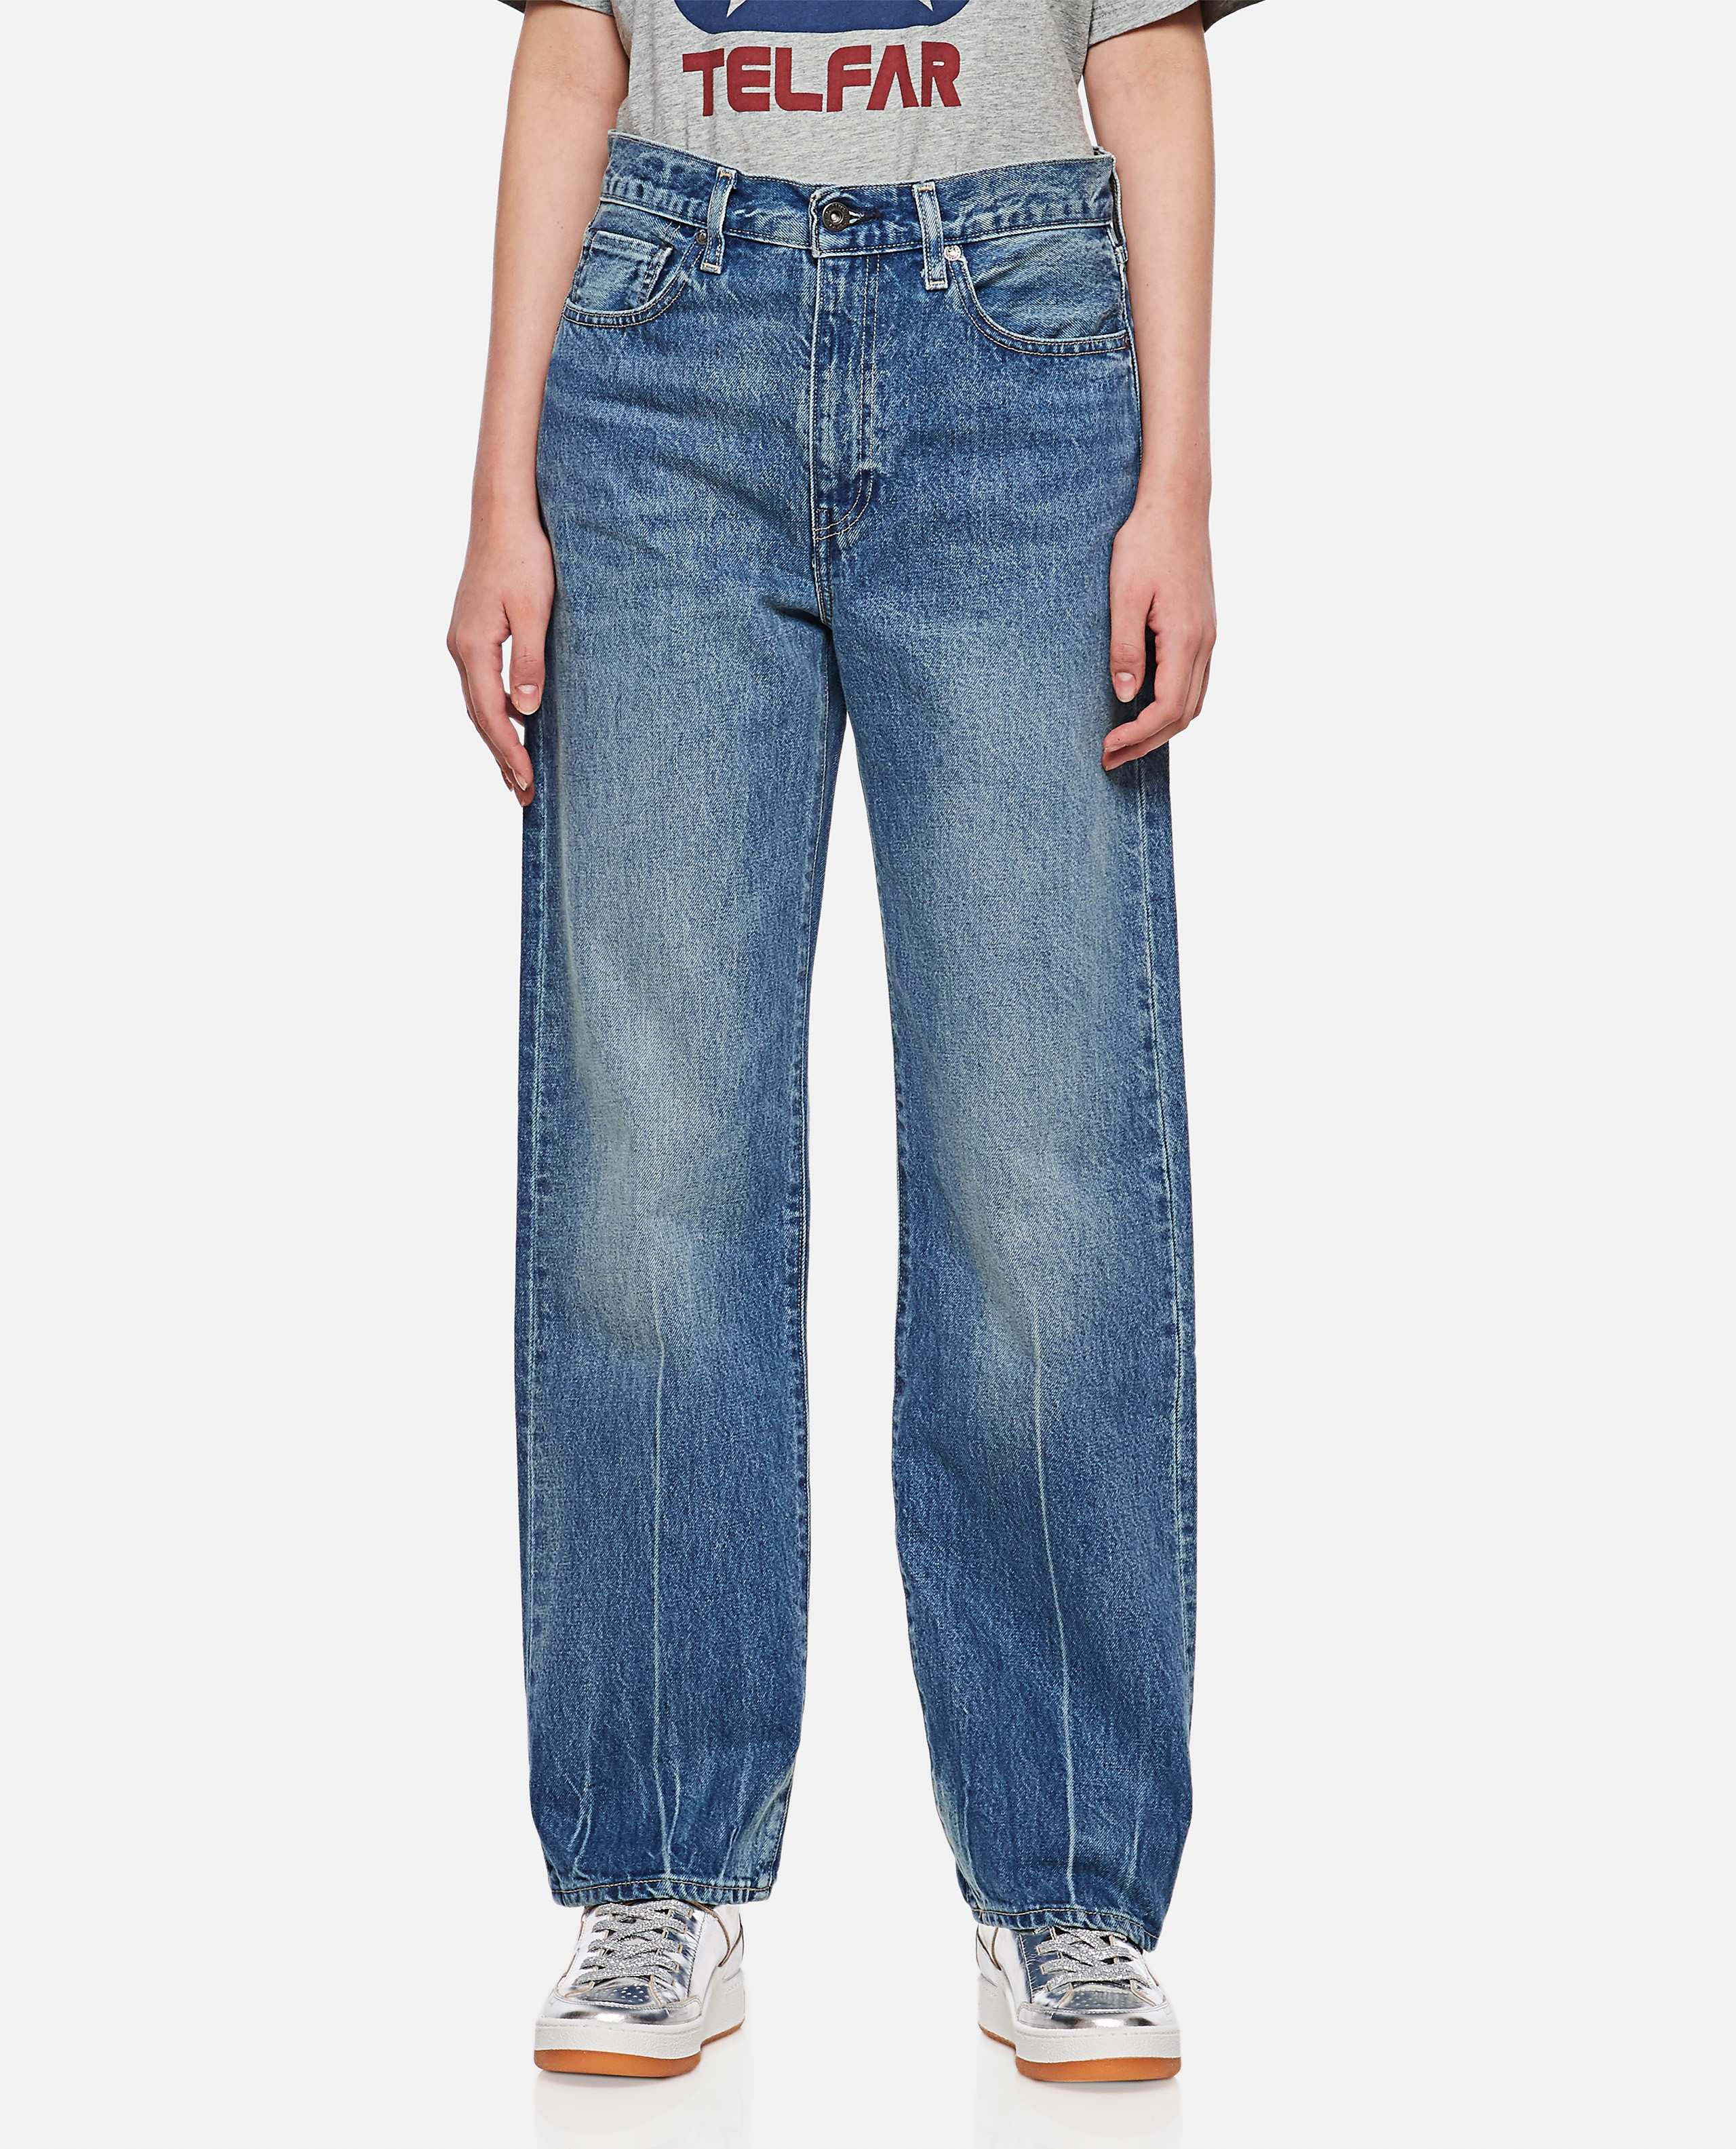 LEVI'S® MADE & CRAFTED® THE COLUMN JEANS Women Levi Strauss & Co. 000352890051347 1